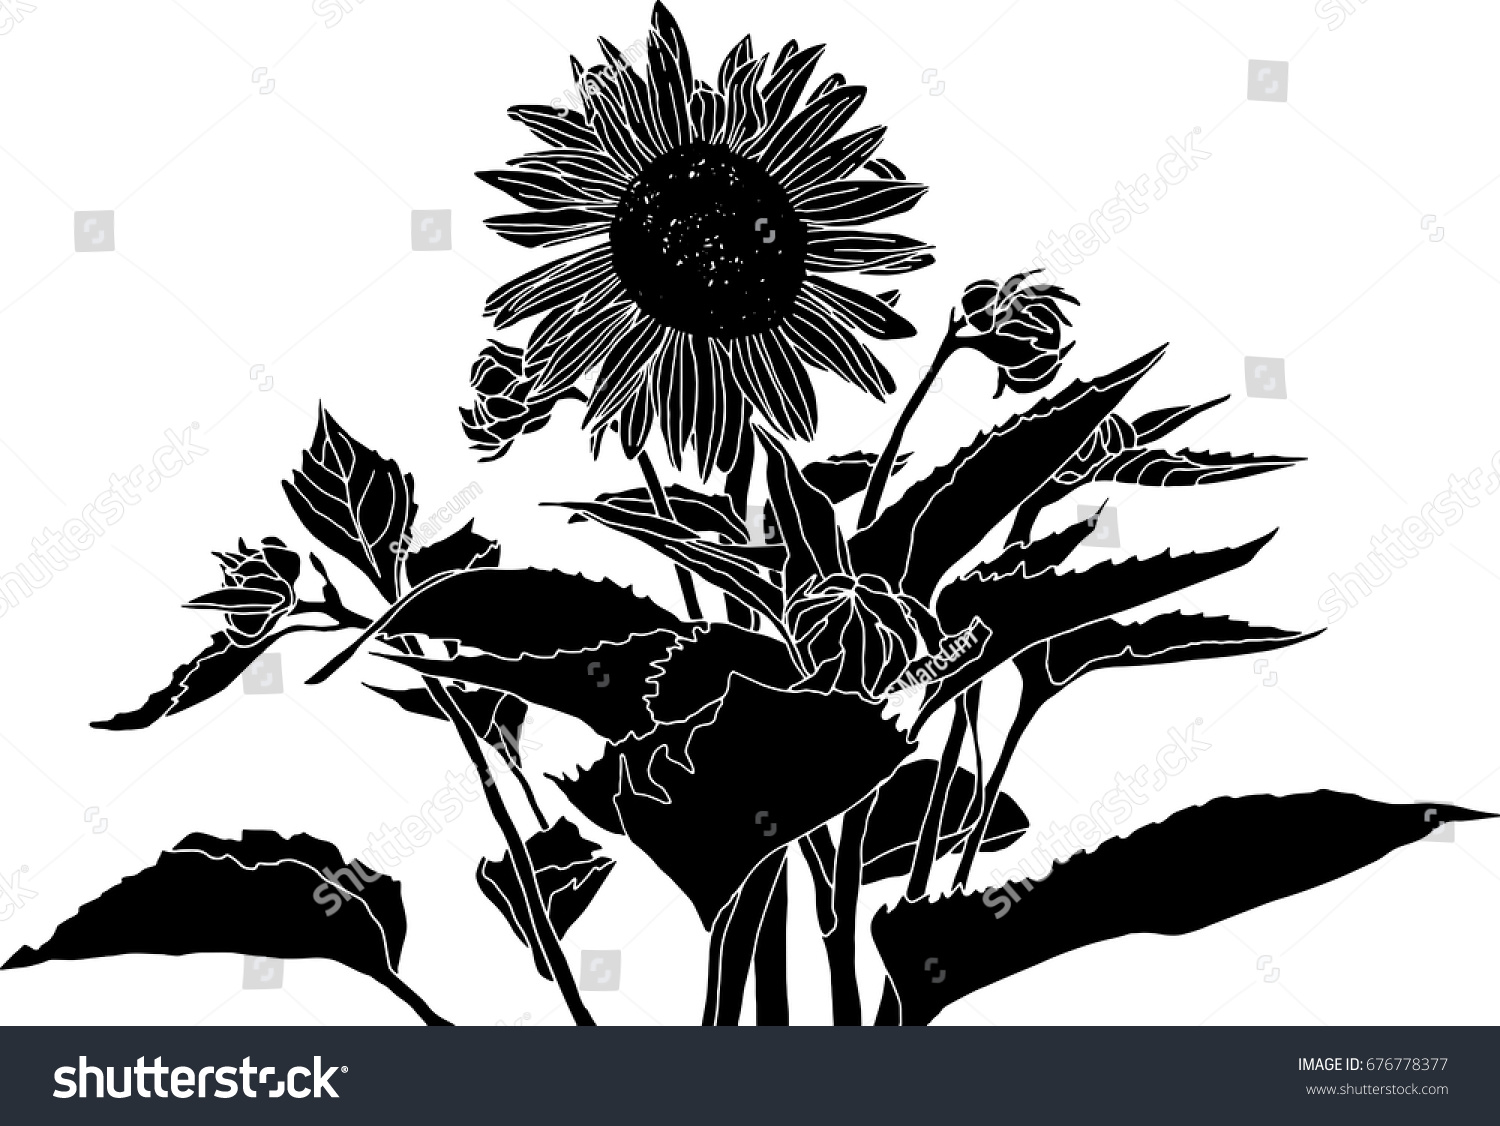 Elegant Black White Sunflower Vector Drawing Stock Vector ... for Clipart Sunflower Black And White  557yll